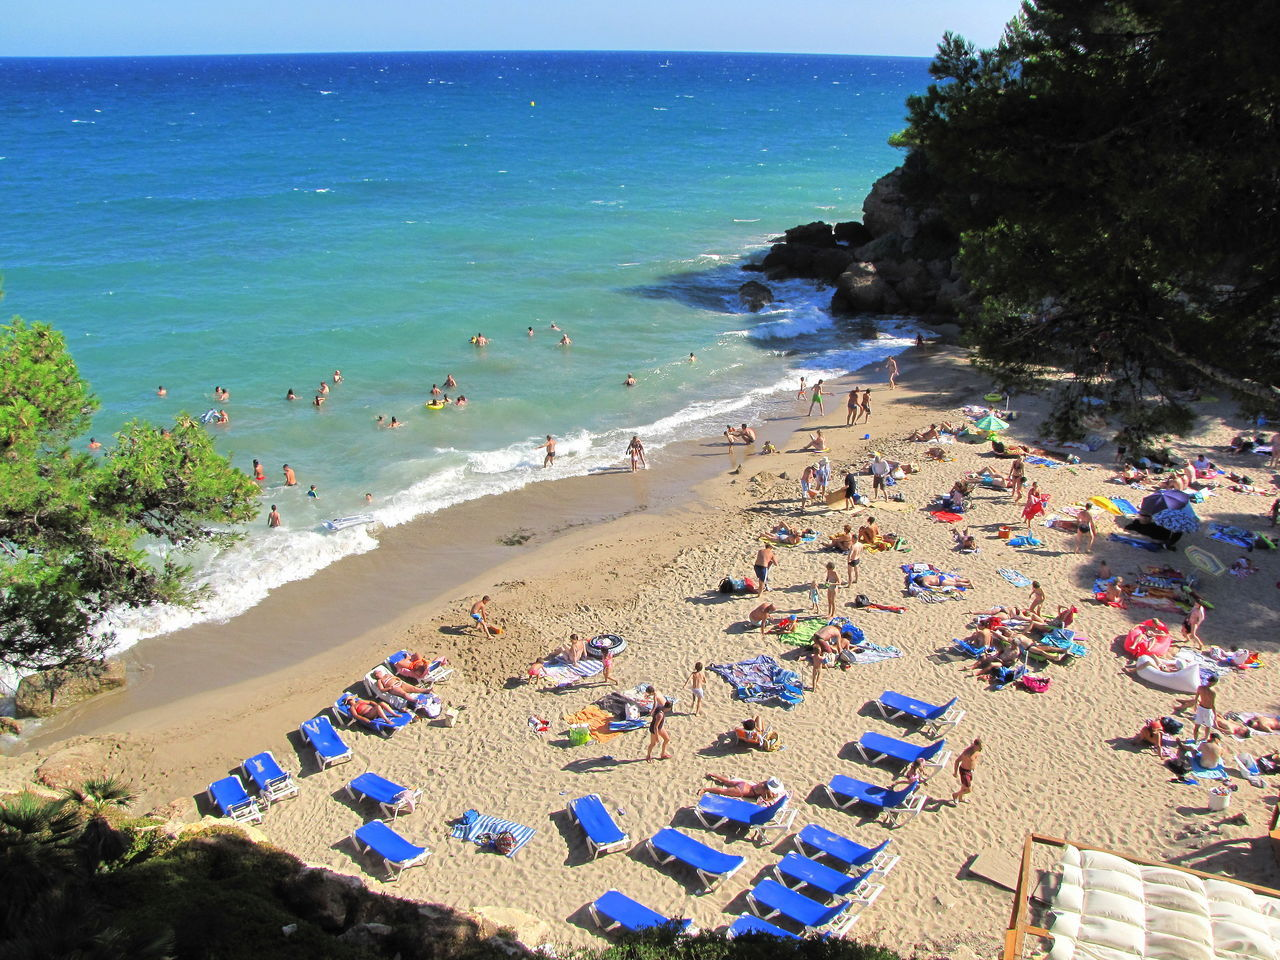 Beach Beach Photography Beauty In Nature Blue Coastline Costa Dorada España Day Horizon Over Water Idyllic Leisure Activity Lifestyles Miami Platja-Tarragona-Spain Outdoors Relaxation Sand Scenics Sea Sky Summer Tourism Tourist Tranquil Scene Tranquility Vacations Water